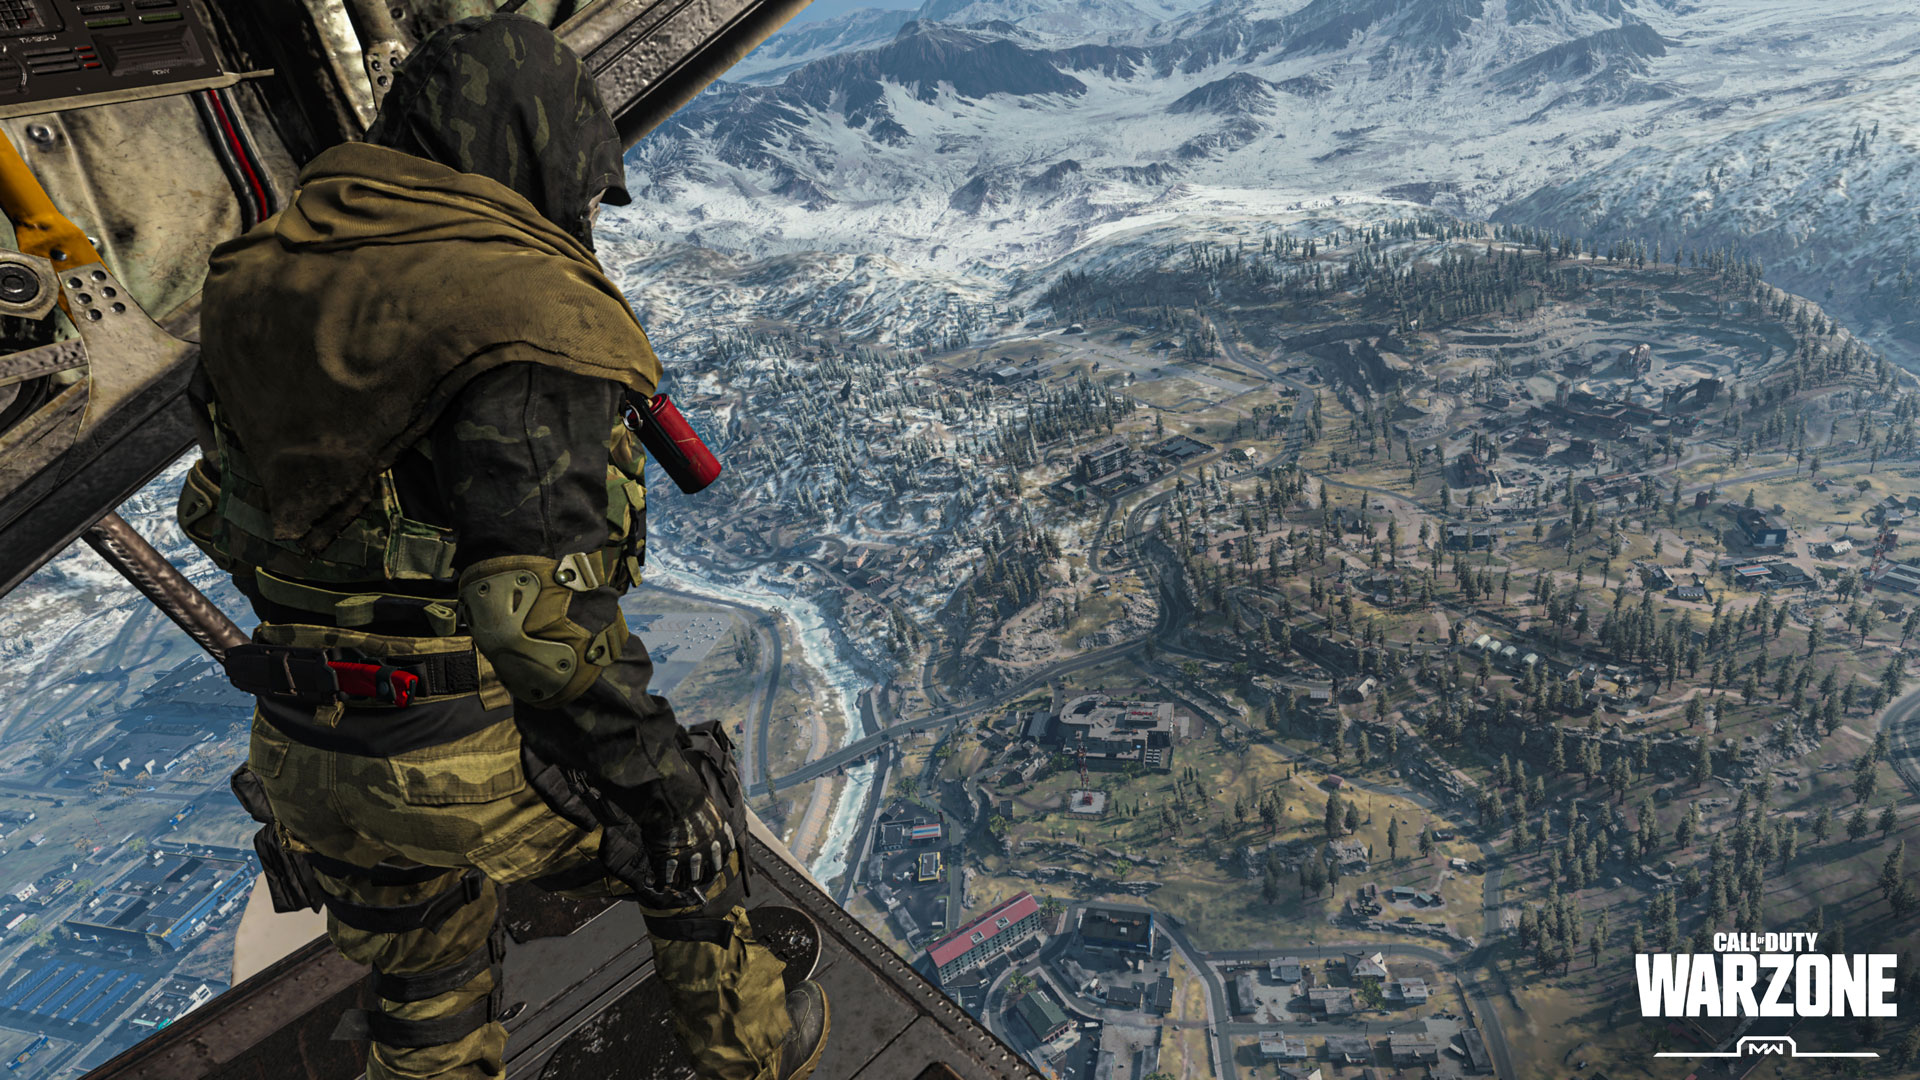 Call of Duty: Warzone appears to be getting private lobbies